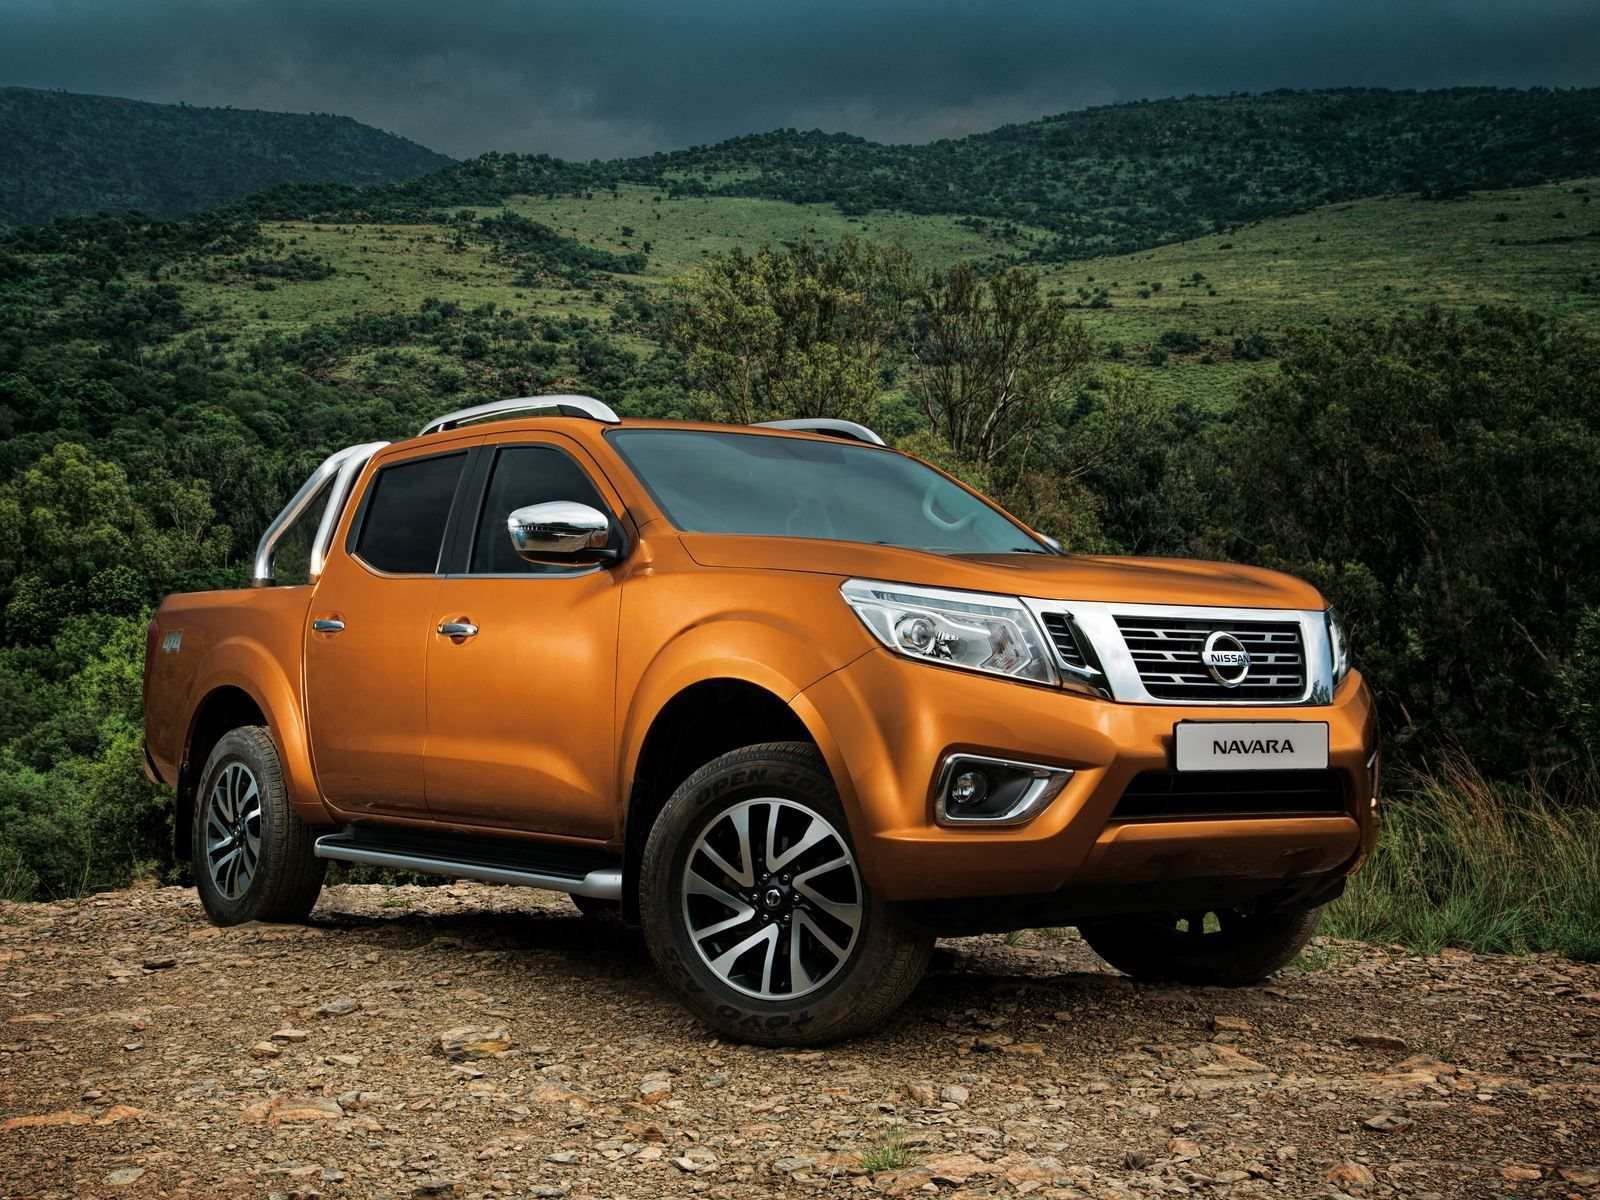 93 All New Nissan Frontier 2020 Usa Price by Nissan Frontier 2020 Usa